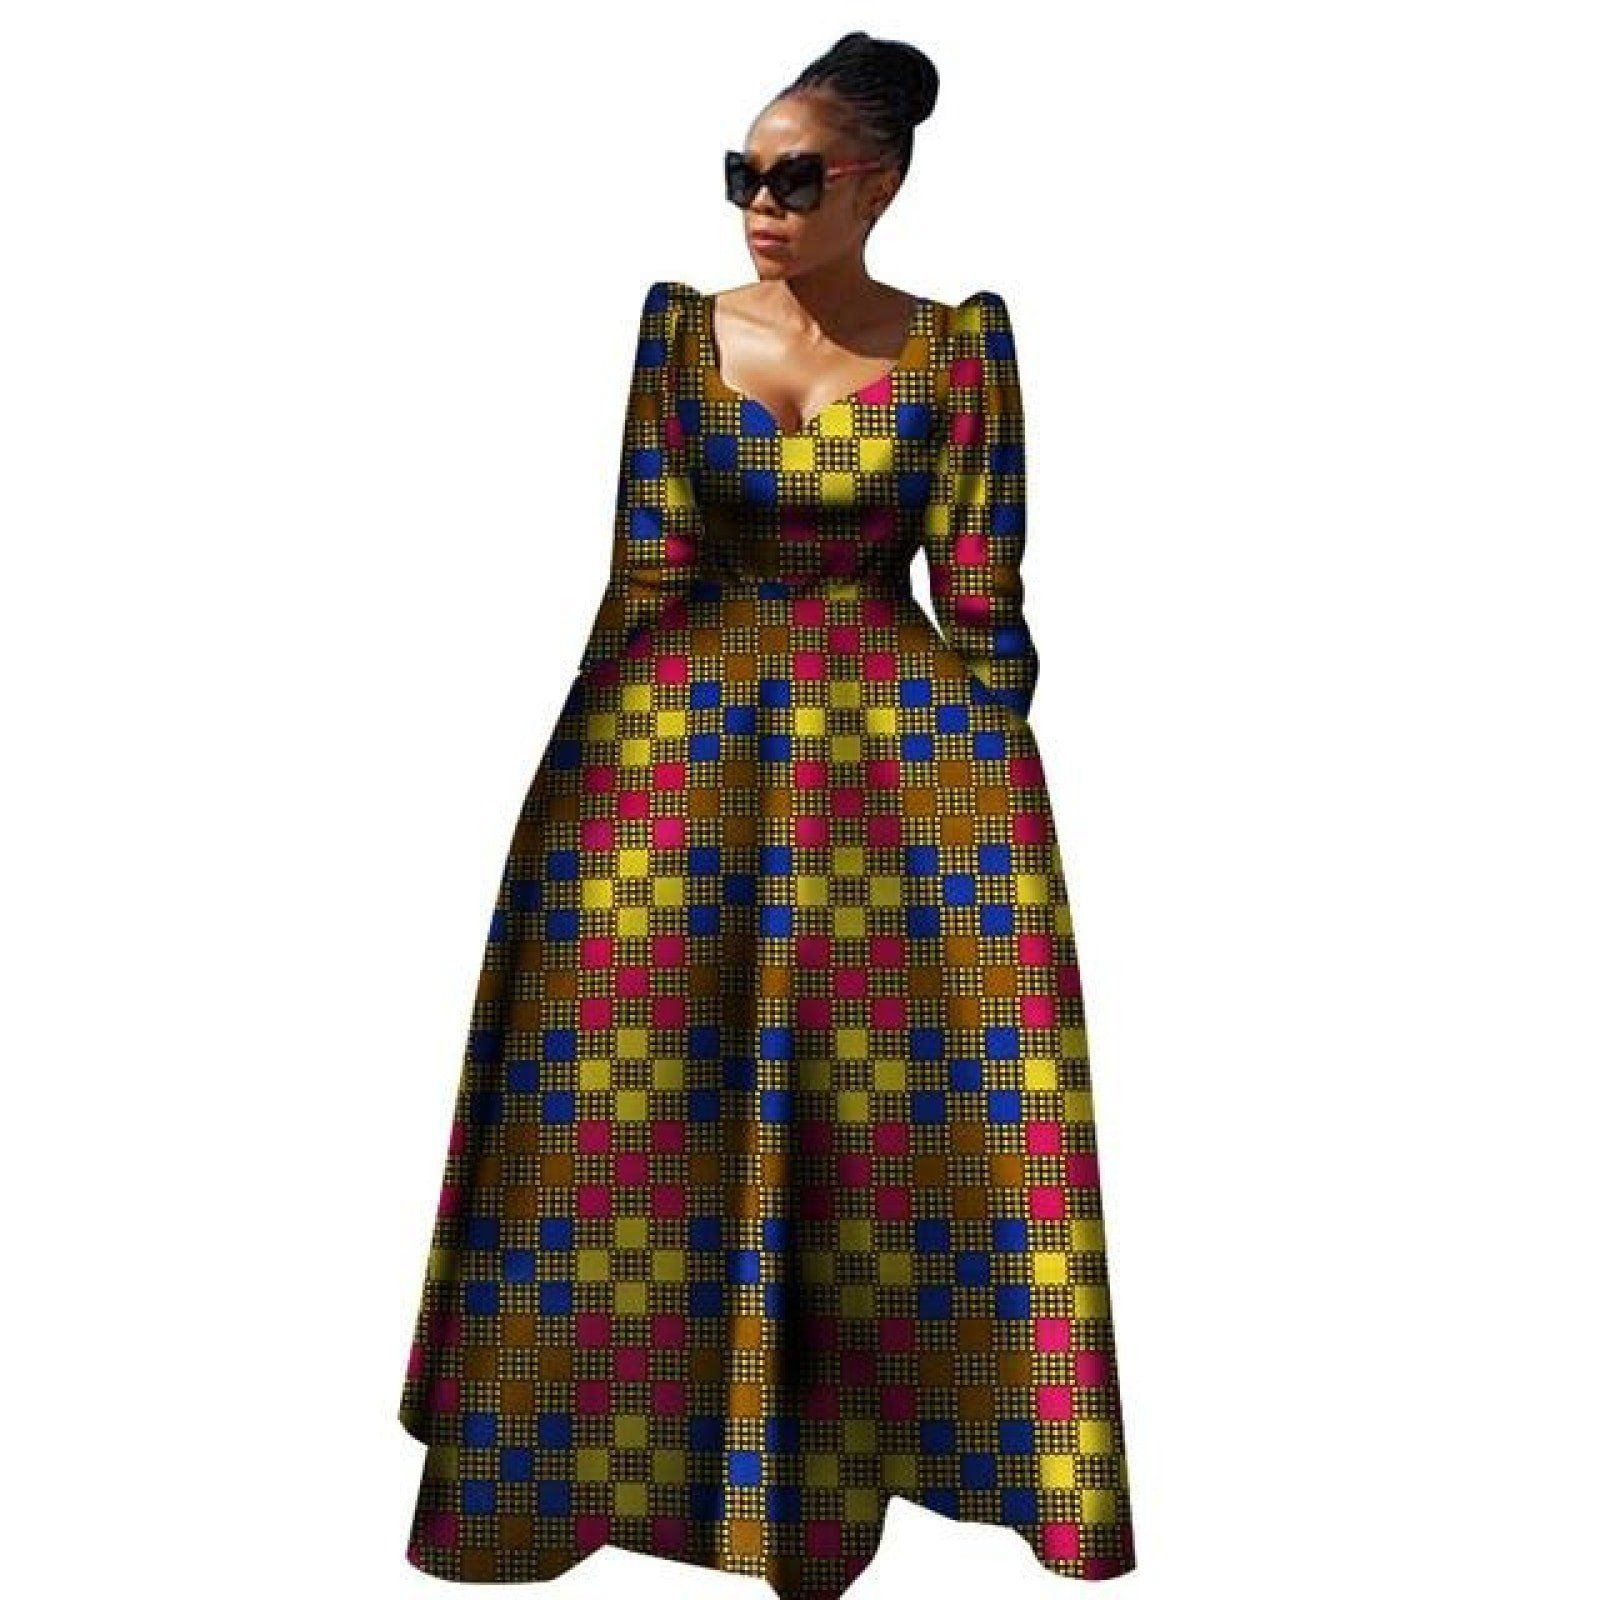 f4666ddac120d4 Yobecho Womens African Print Dashiki Dress Long Fit and Flare Crop Top  Skirt Outfits Maxi Dress with Pockets at Amazon Women s Clothing…